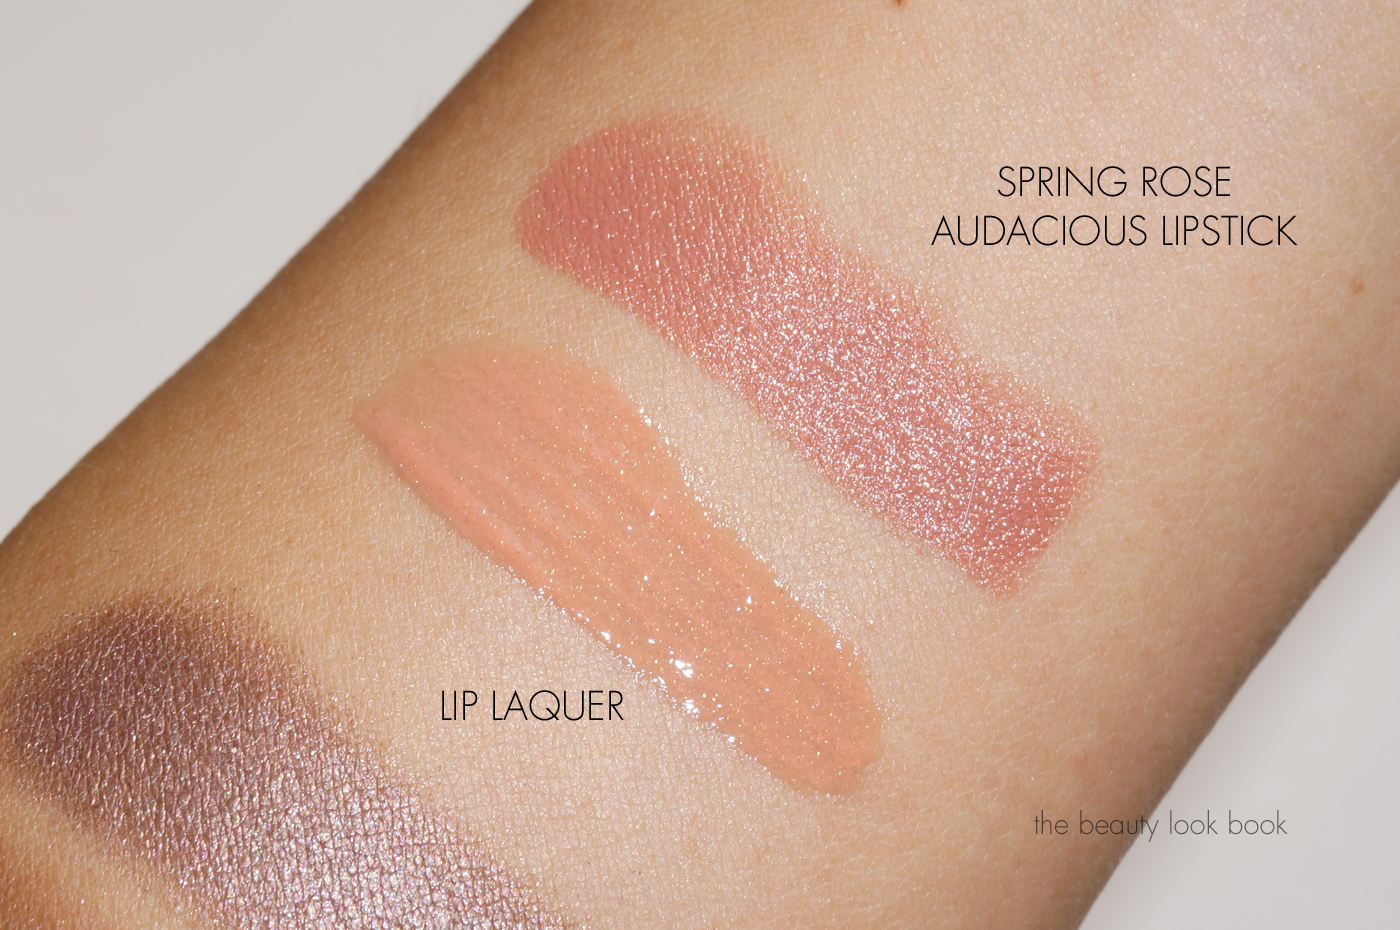 df0d38904a All items swatched side by side with different lighting (please excuse the  typos below, the Aristocrat Duo label is supposed to say Aristocratic Duo):